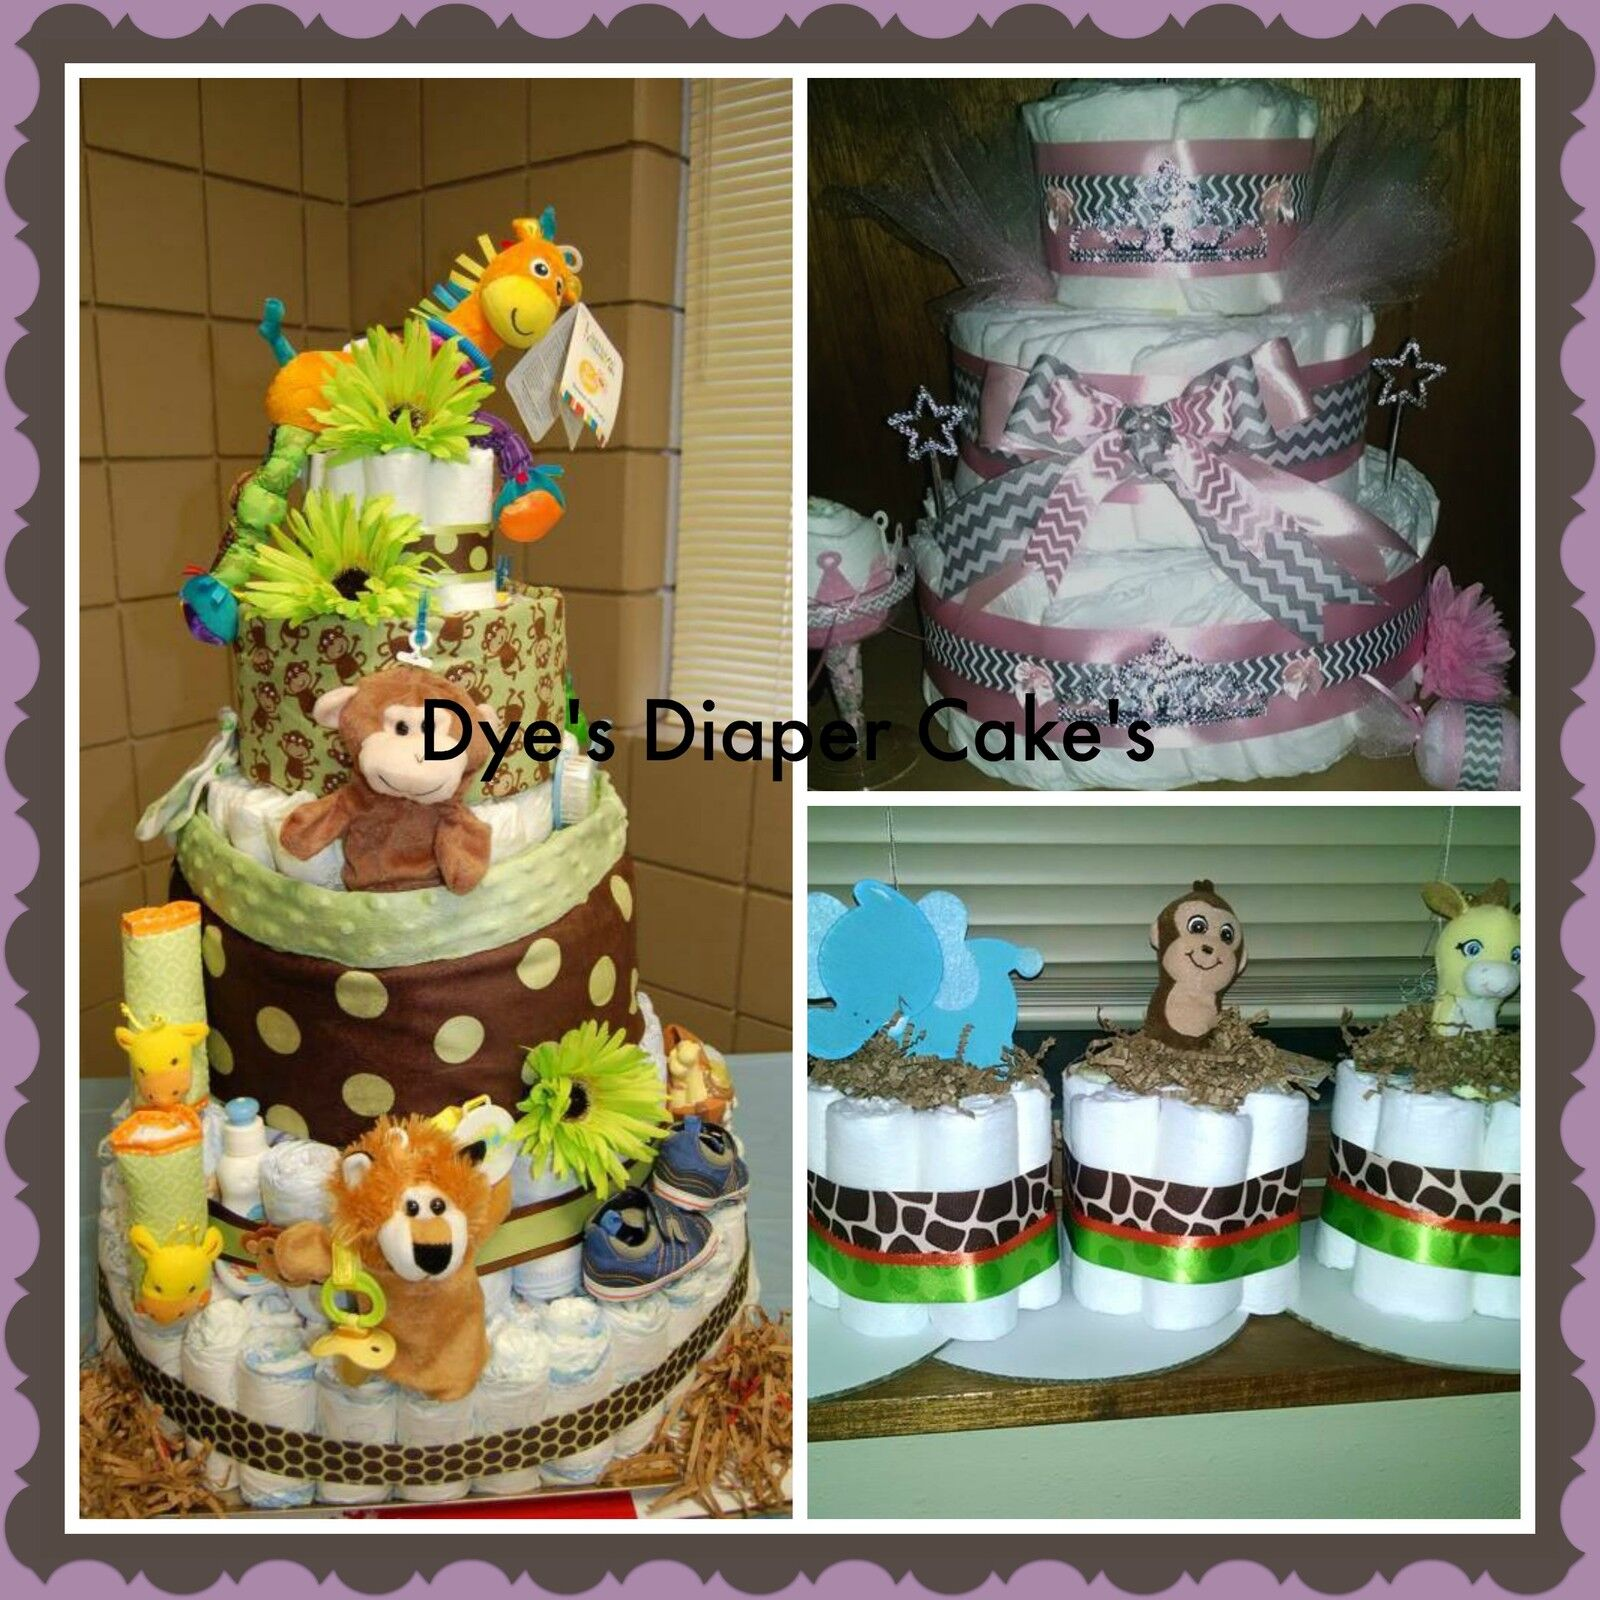 Dyes Diaper Cakes